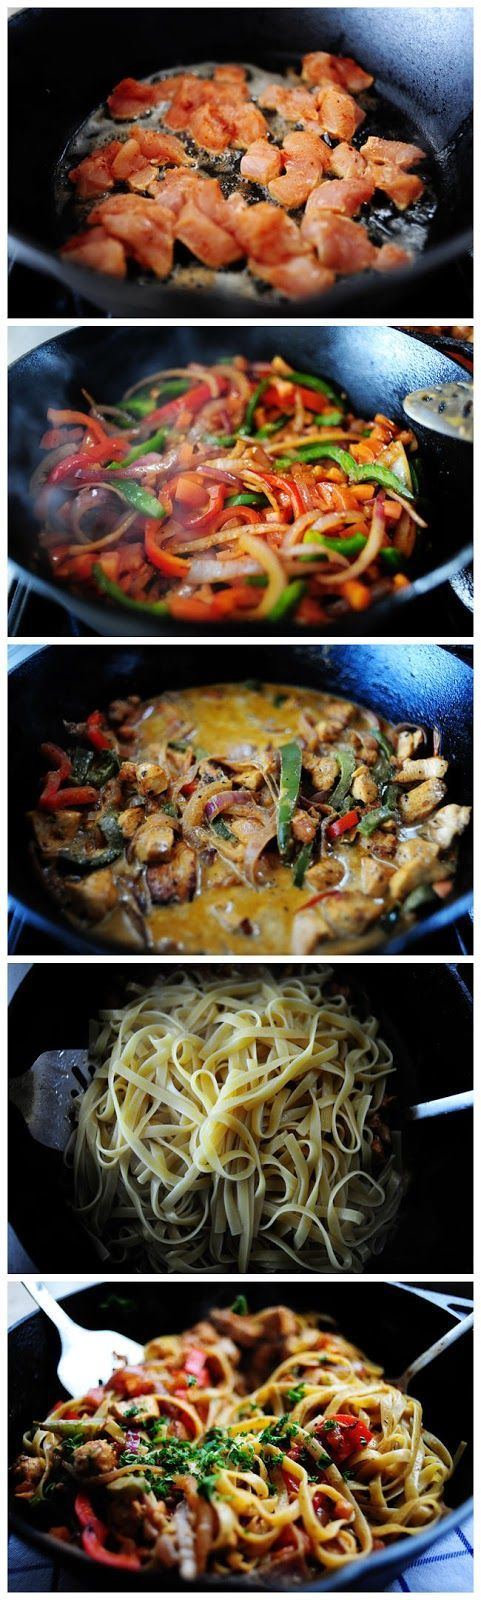 Cajun Chicken Pasta. This would make a delicious light meal